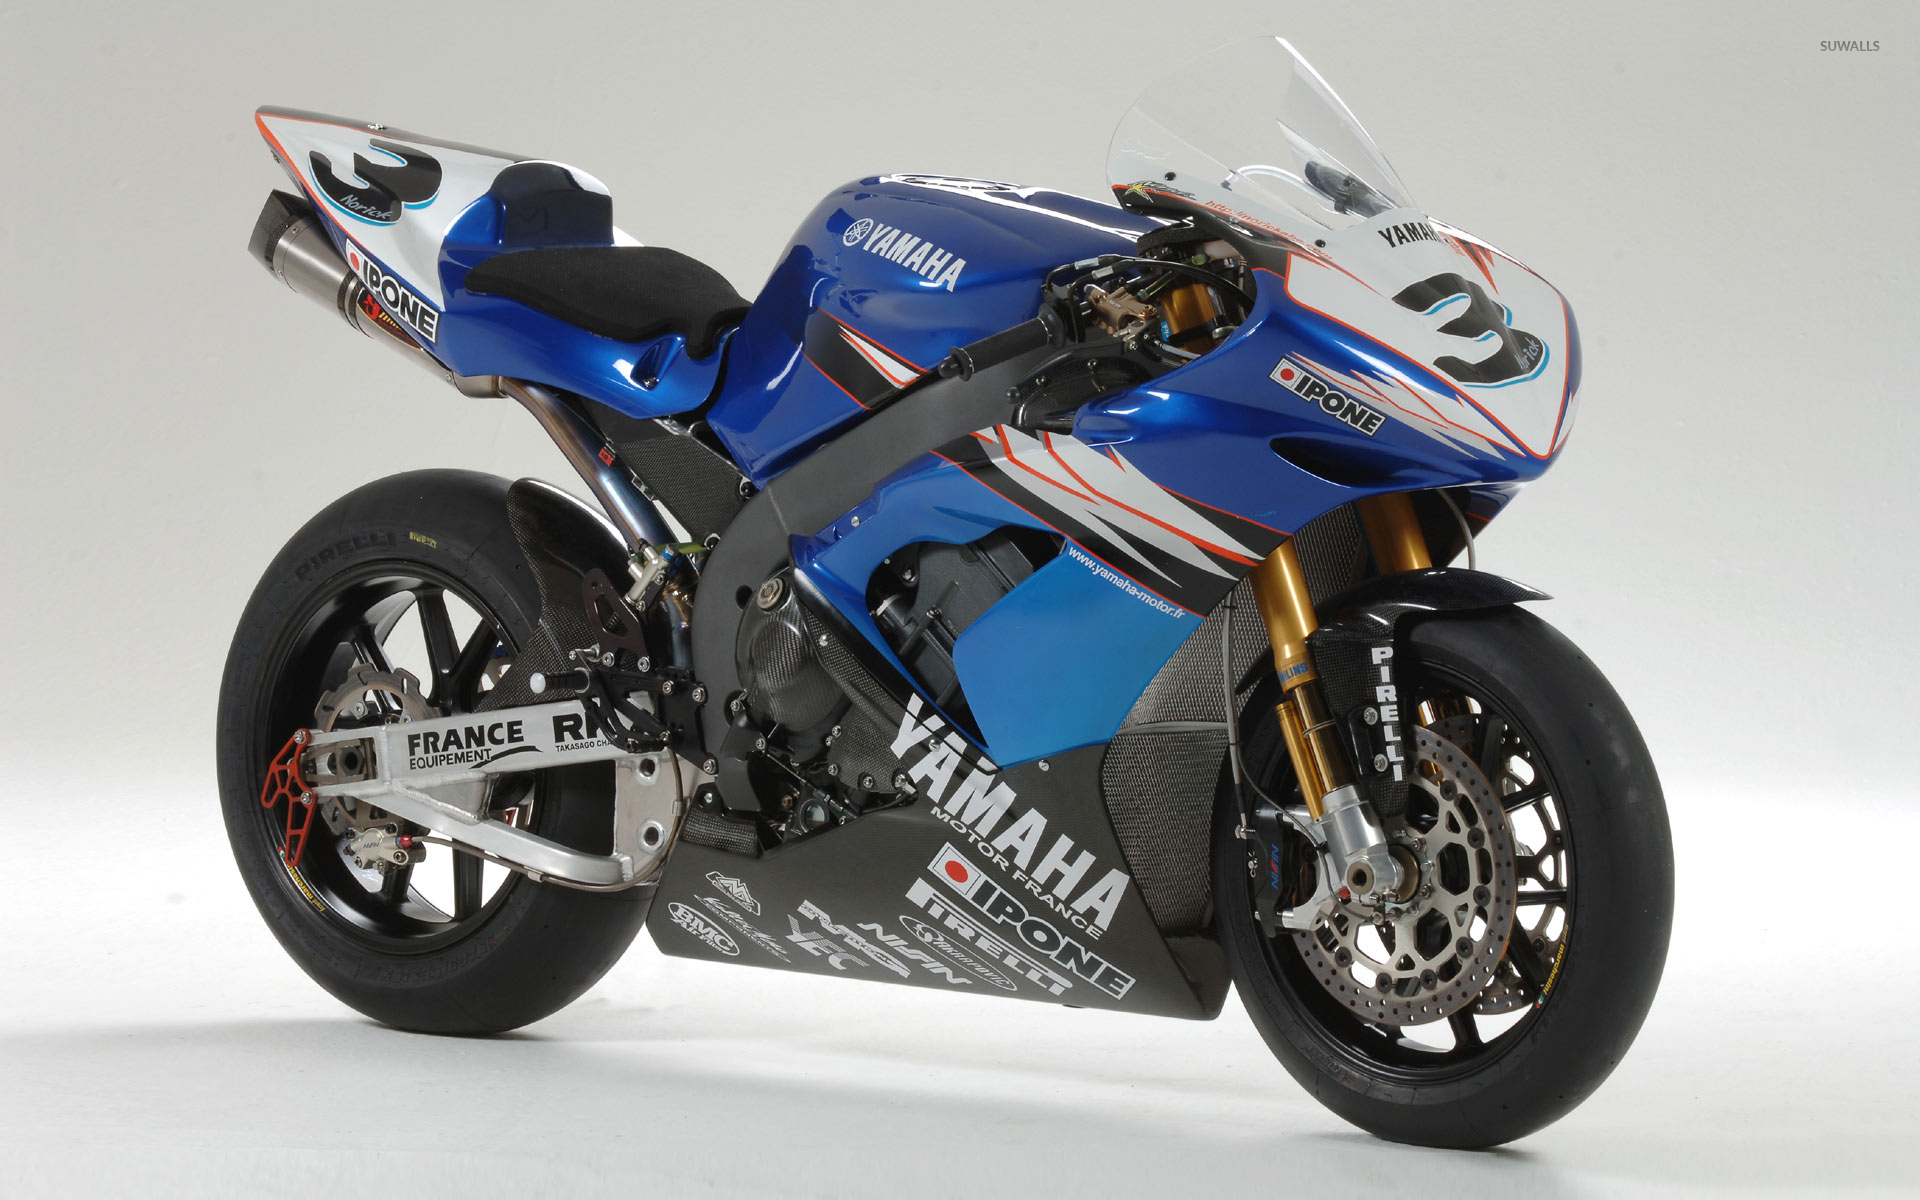 yamaha r1 blue bike - photo #27